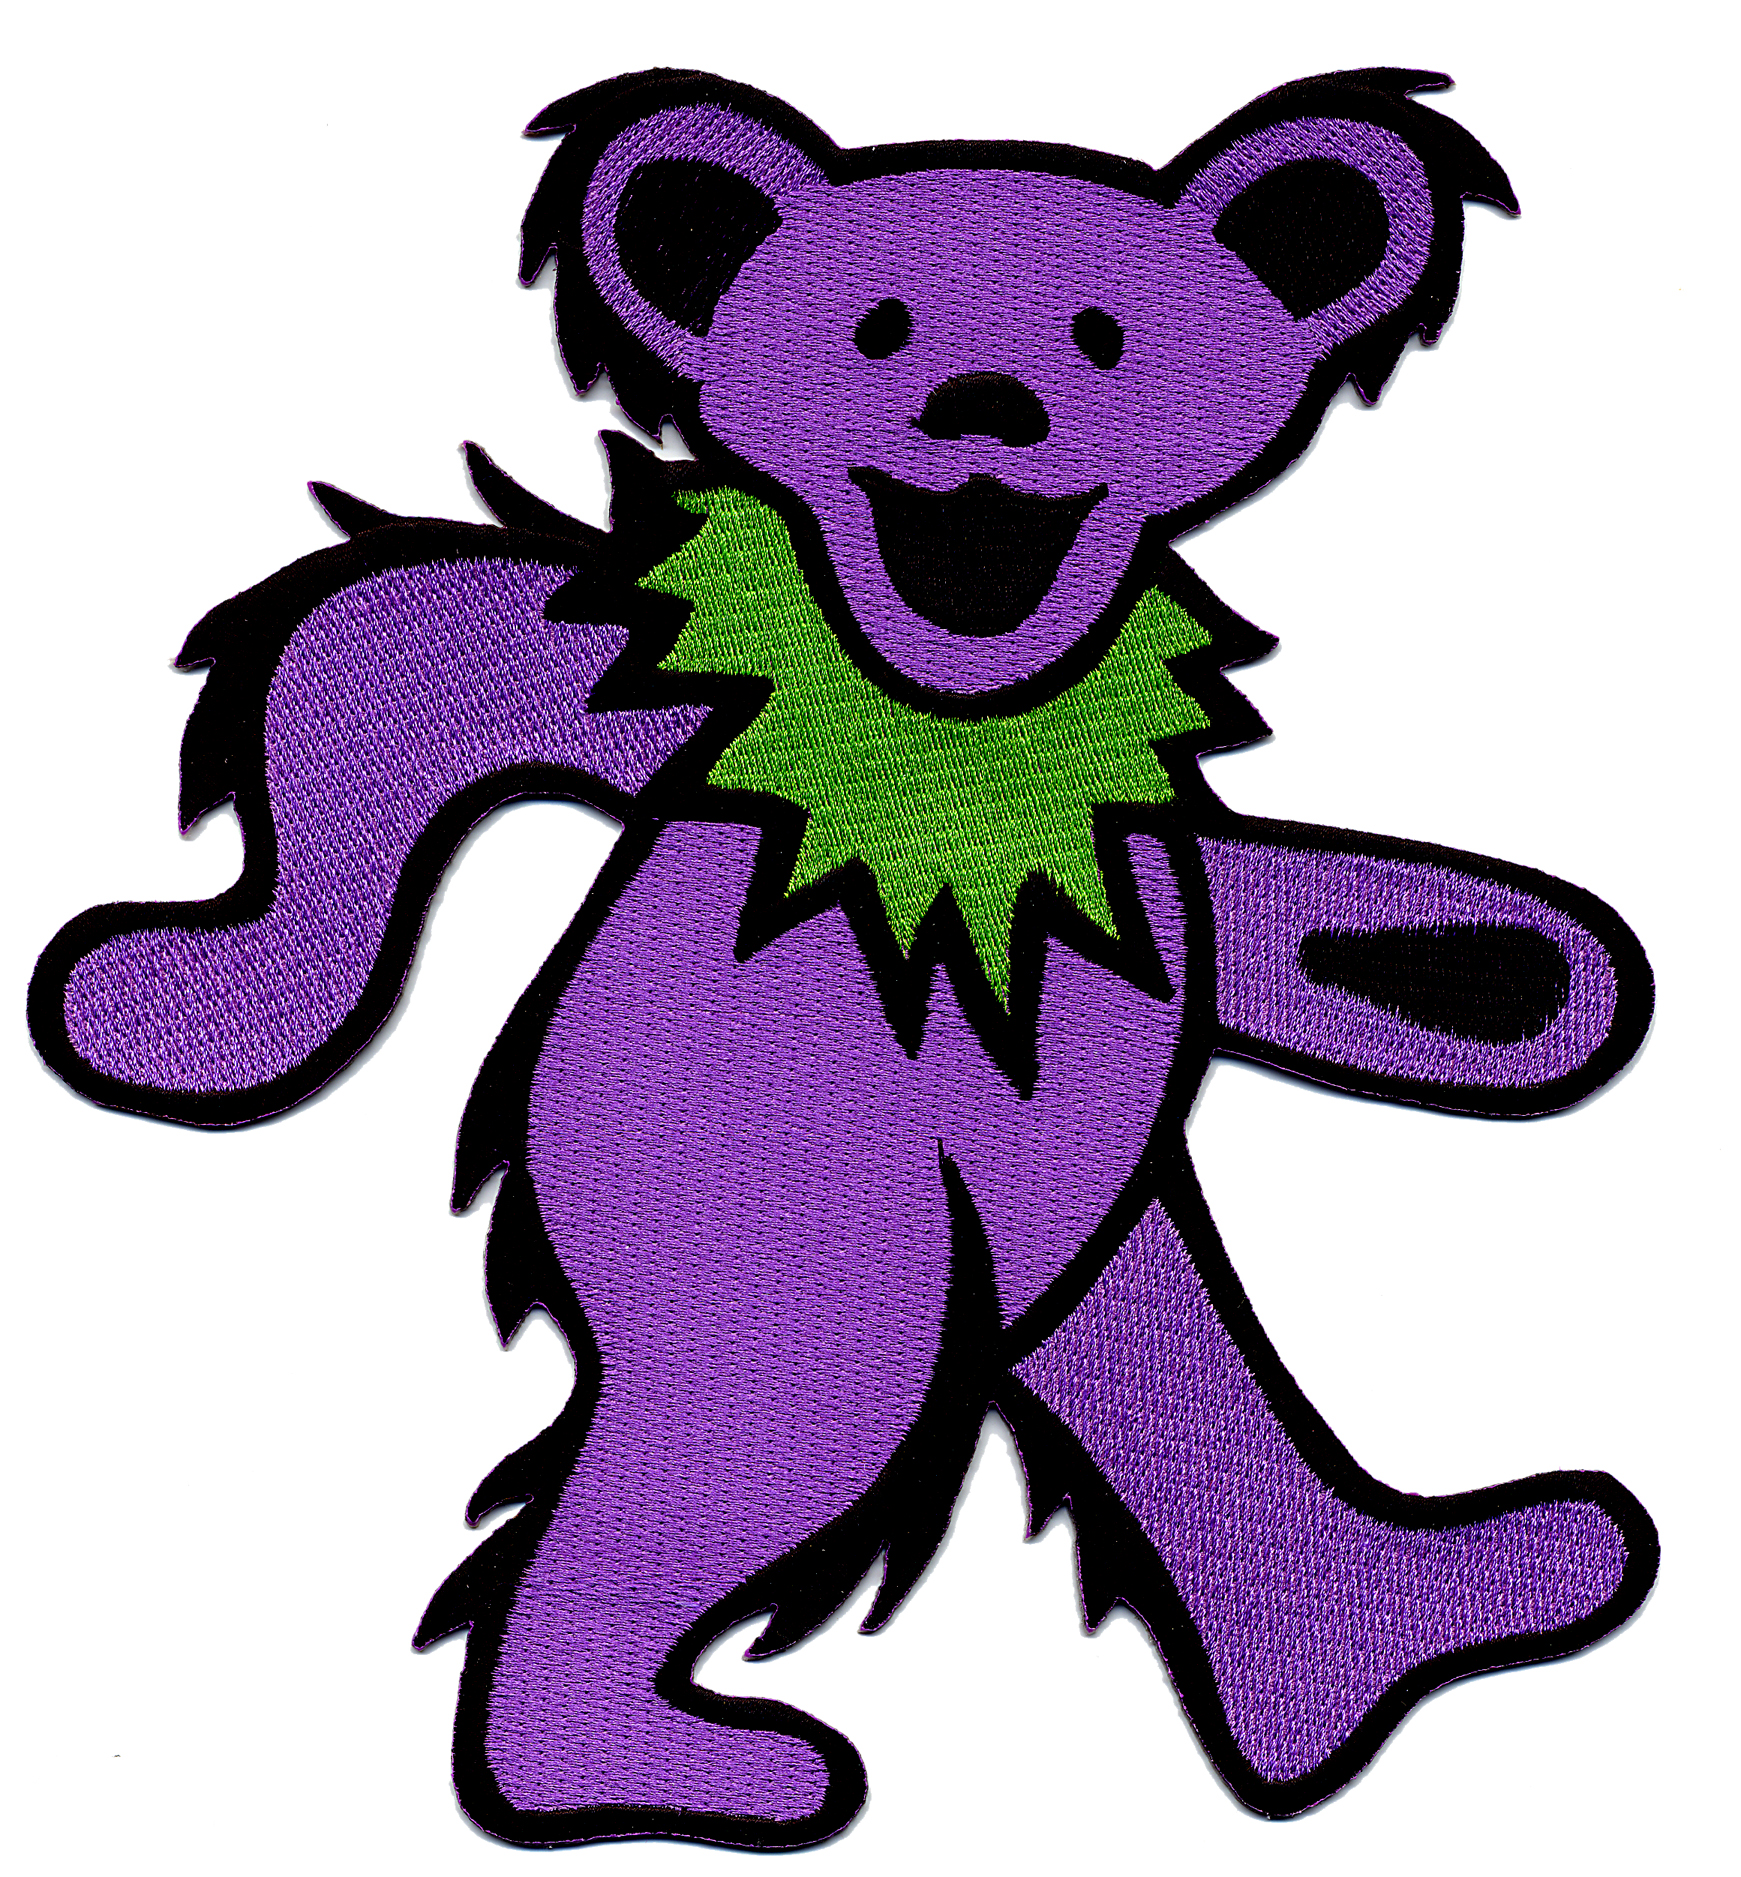 Grateful Dead Xxl Dancing Bear Patch Gypsy Rose clipart free image.